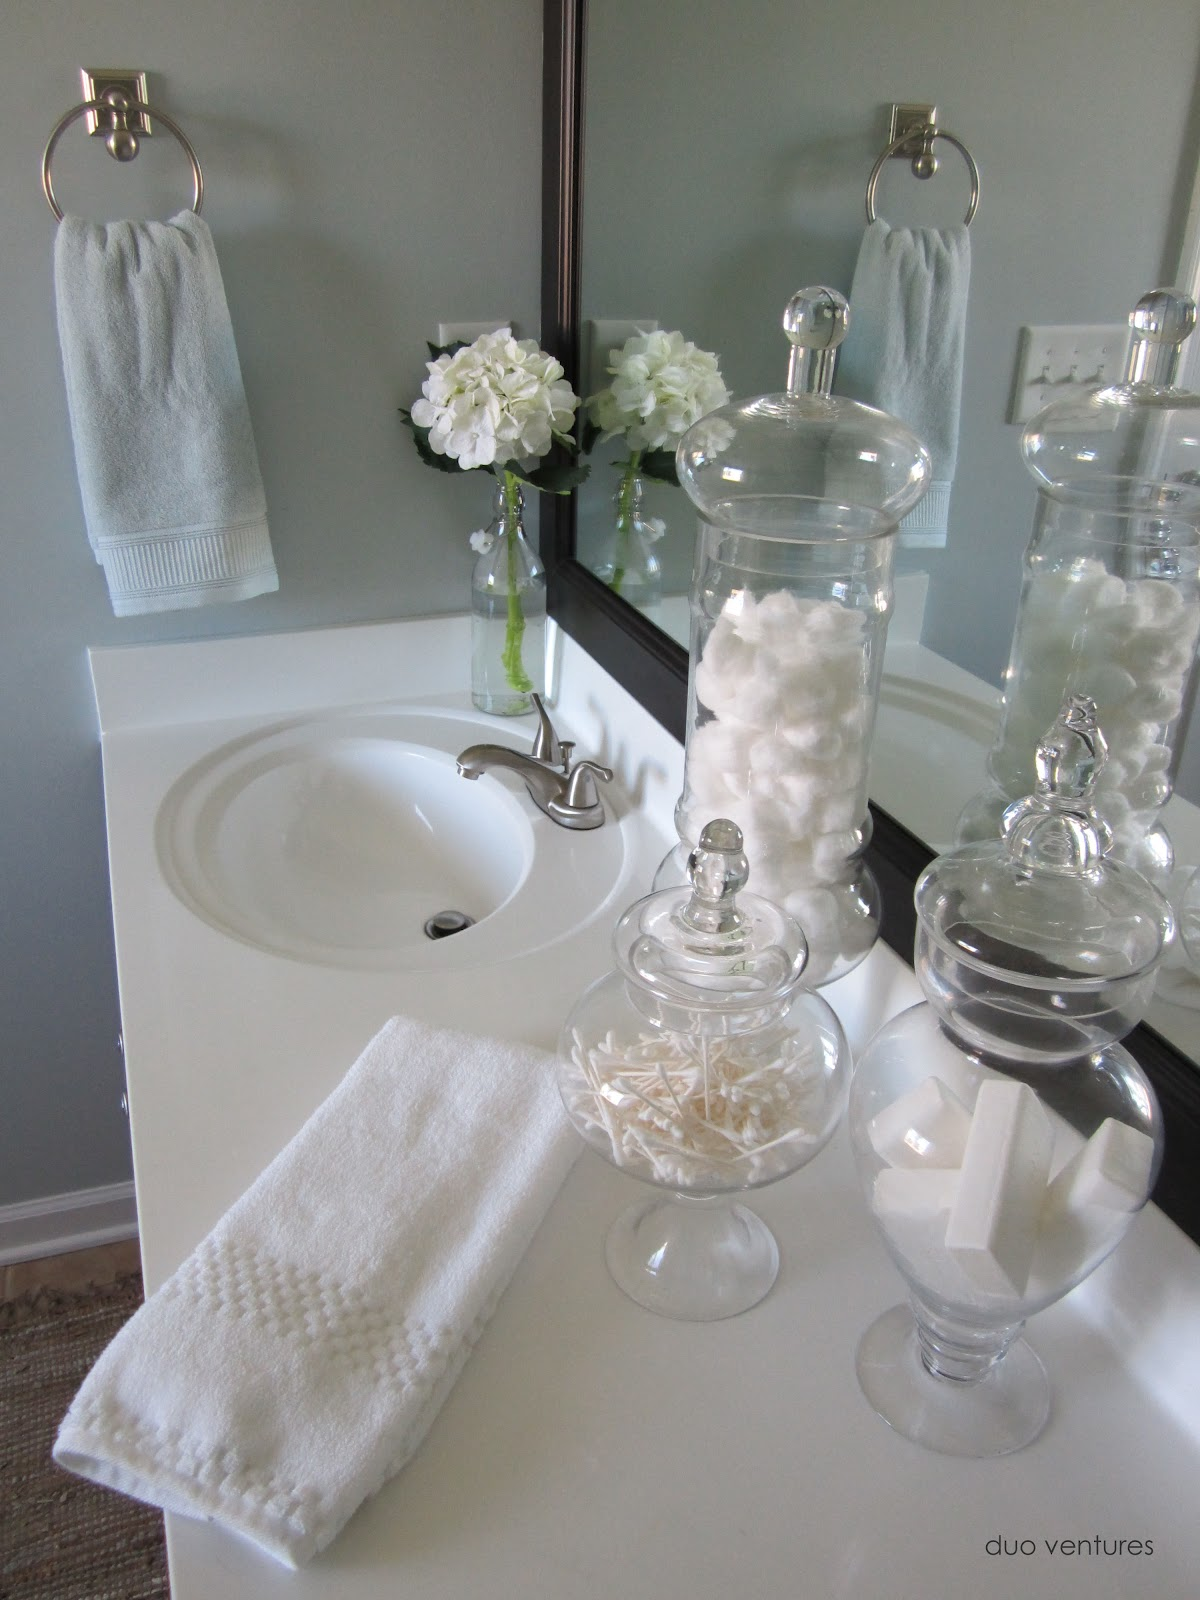 Duo Ventures Master Bathroom Makeover